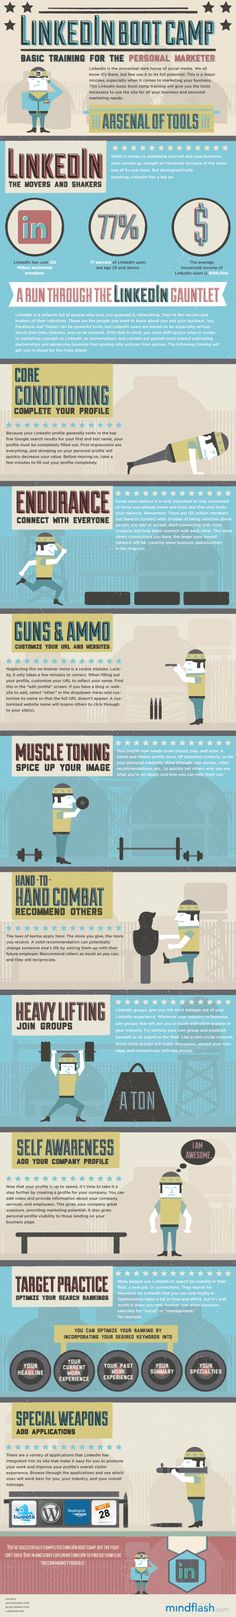 Linked In Bootcamp #infographic